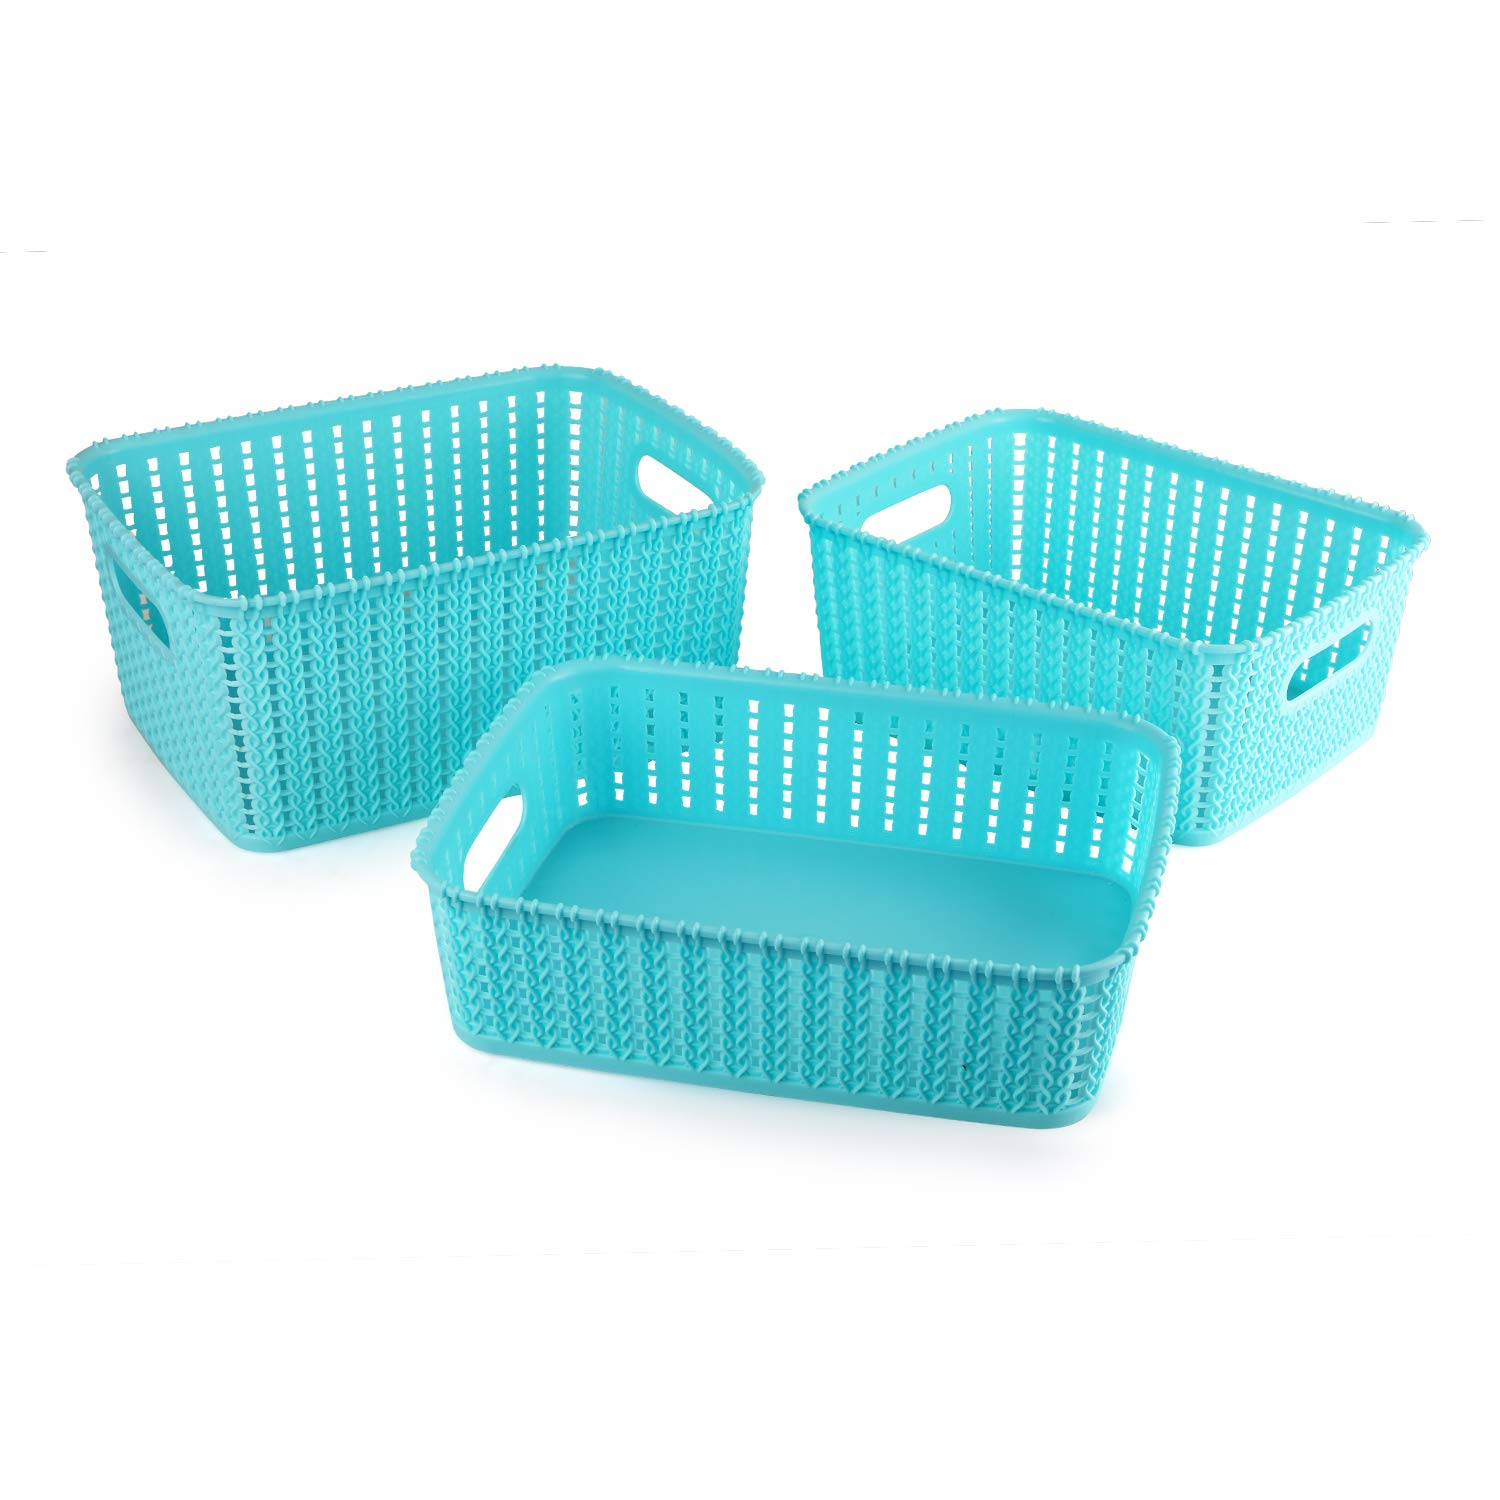 Cello Basket Without Lid, Set of 3